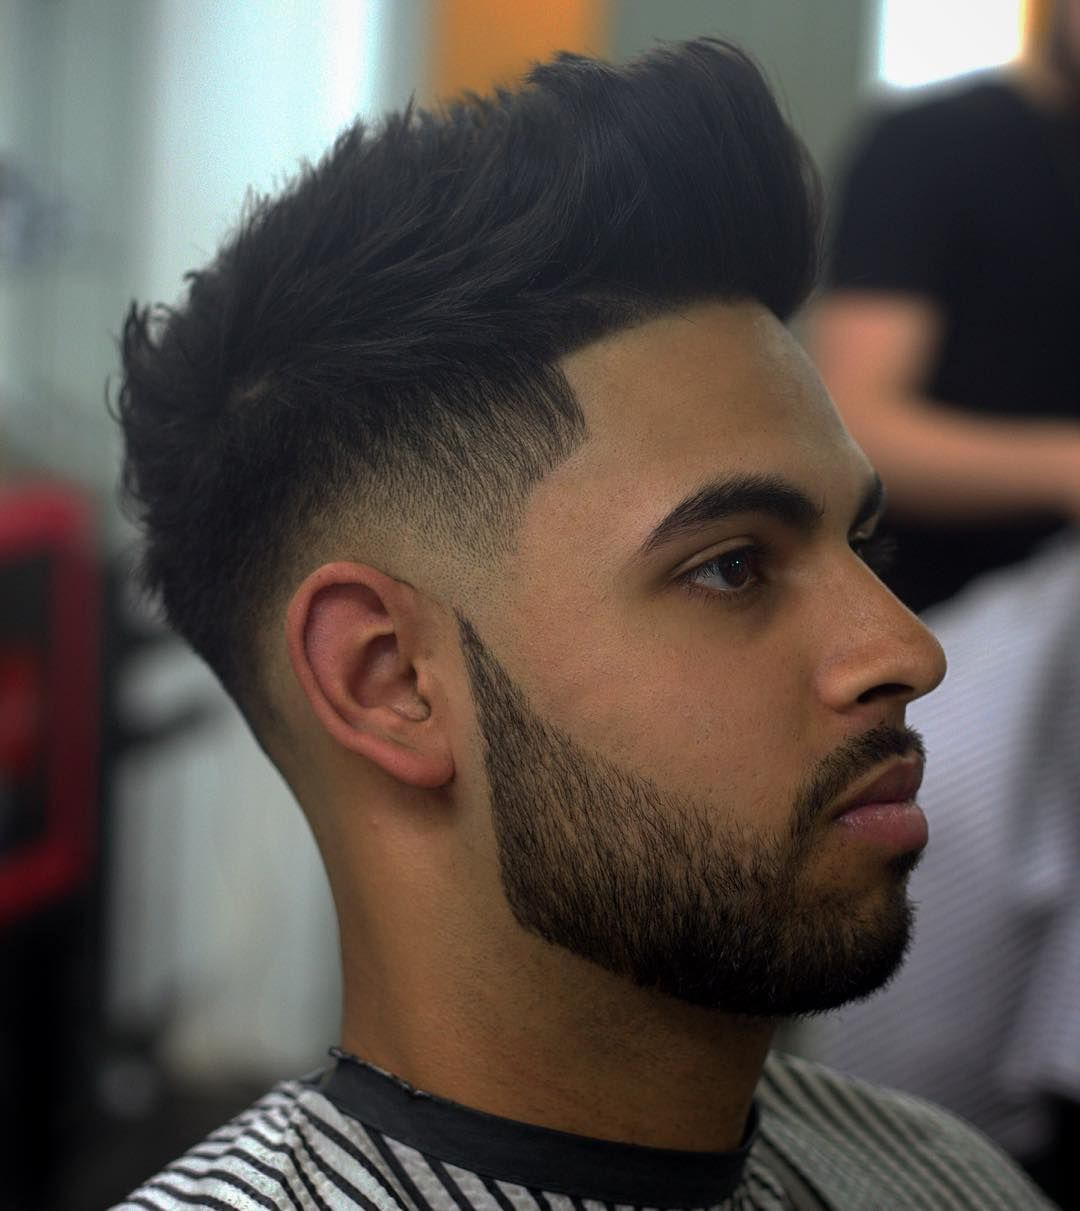 Master Barber Of The Year Owner Raw Image Barbershop - Hairstyle barbershop 2015